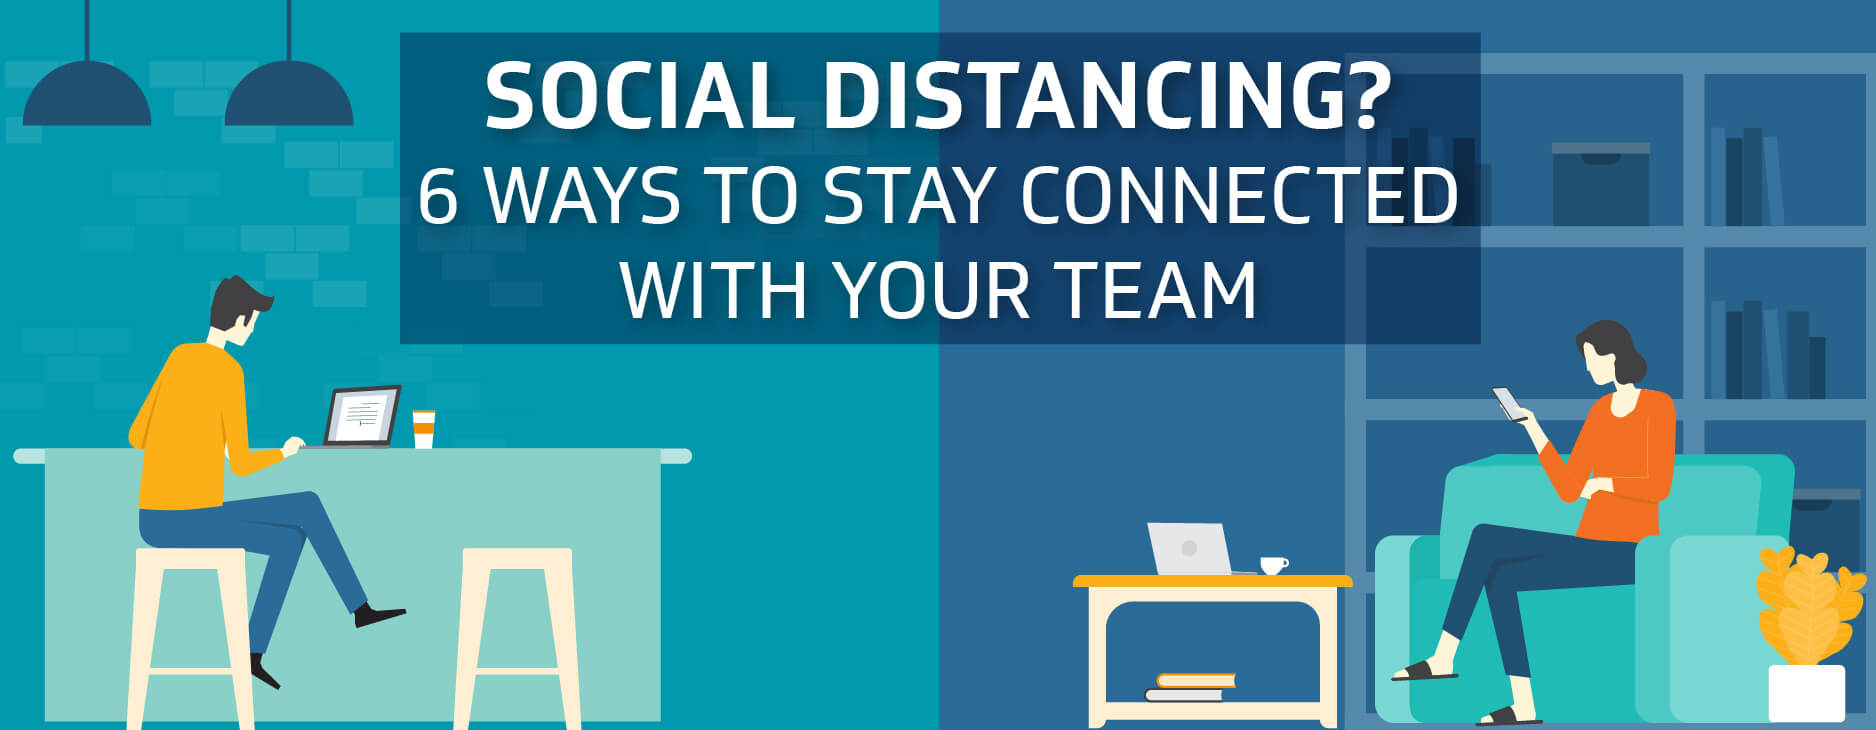 Social Distancing? 6 Ways to Stay Connected With Your Team